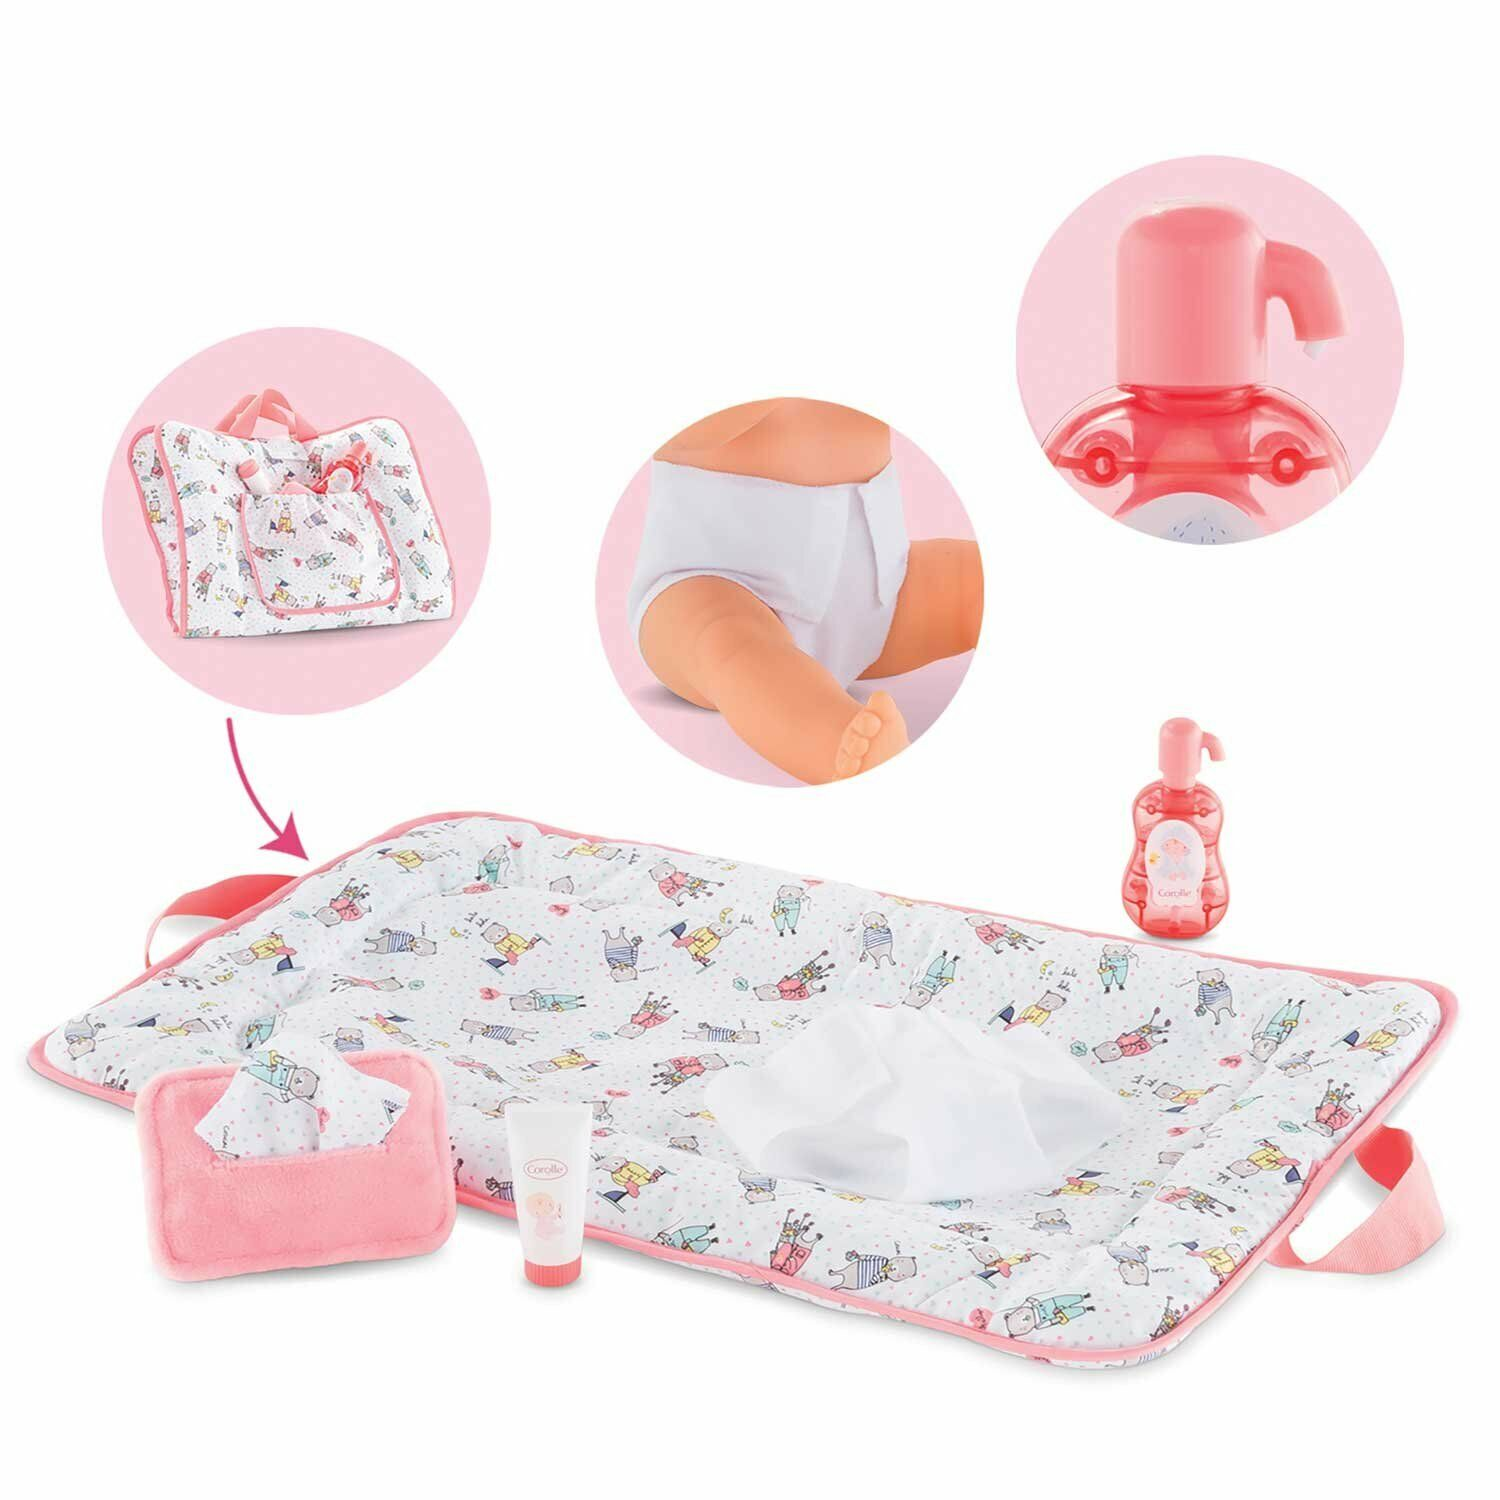 Corolle Mon Grand Poupon Changing Accessories Set Toy Baby D